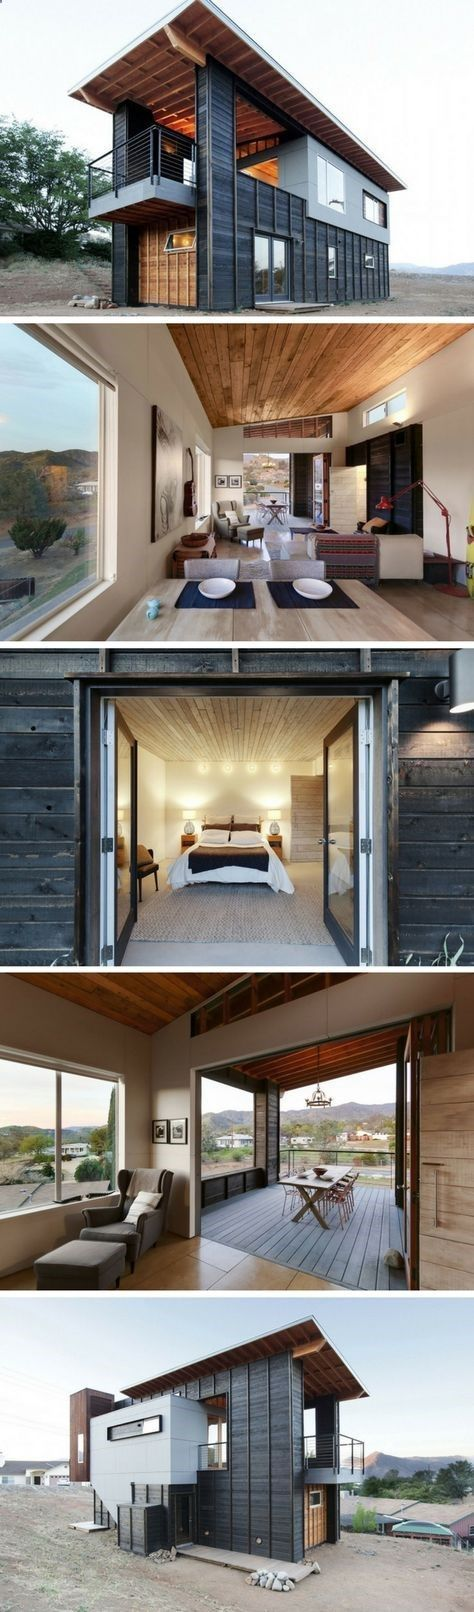 Container House - Container House - 510 CABIN STUDIO SHIPPING CONTAINER HOME - Who Else Wants Simple Step-By-Step Plans To Design And Build A Container Home From Scratch? - Who Else Wants Simple Step-By-Step Plans To Design And Build A Container Home From Scratch? #FavoriteContainerHomes